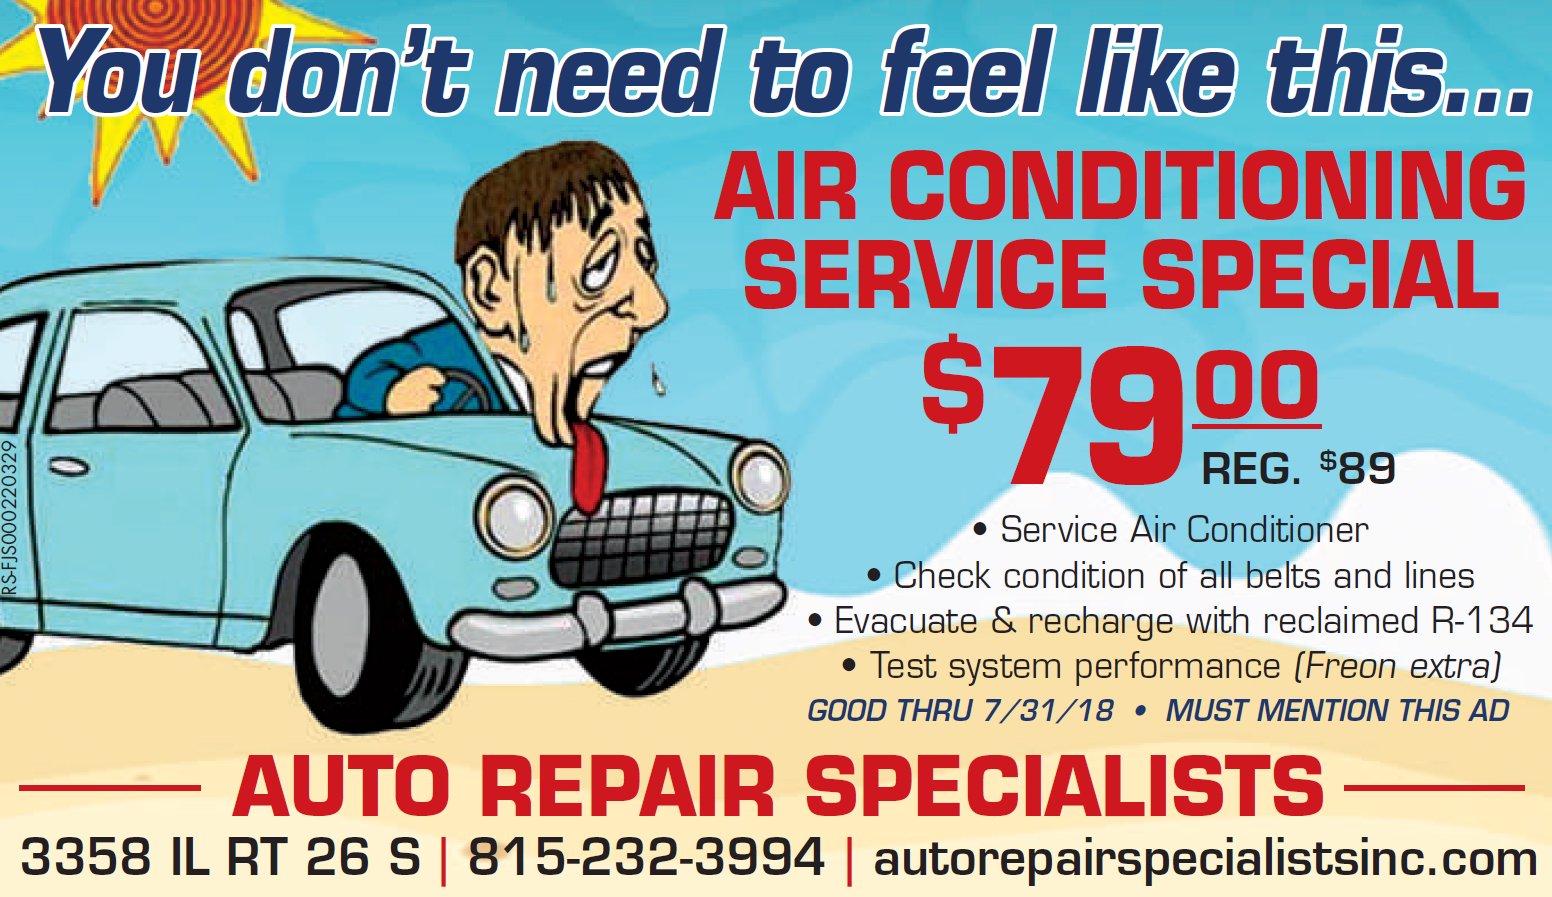 Auto-Repair-Specialists-Eblast-July-2018.PNG